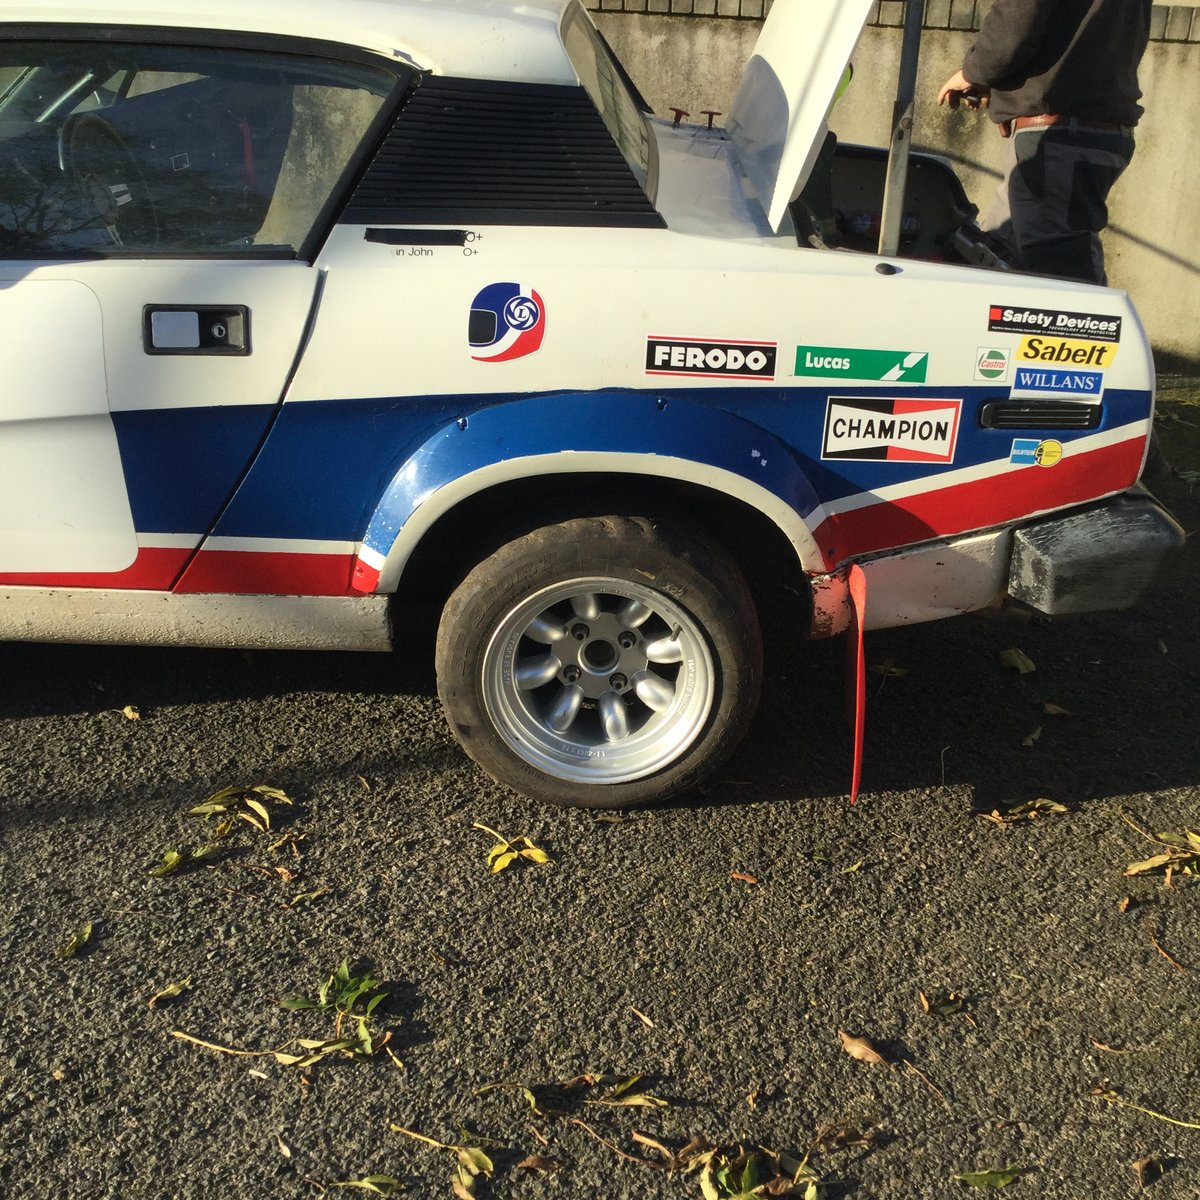 1979 Tr7 v8 rally car For Sale (picture 1 of 6)